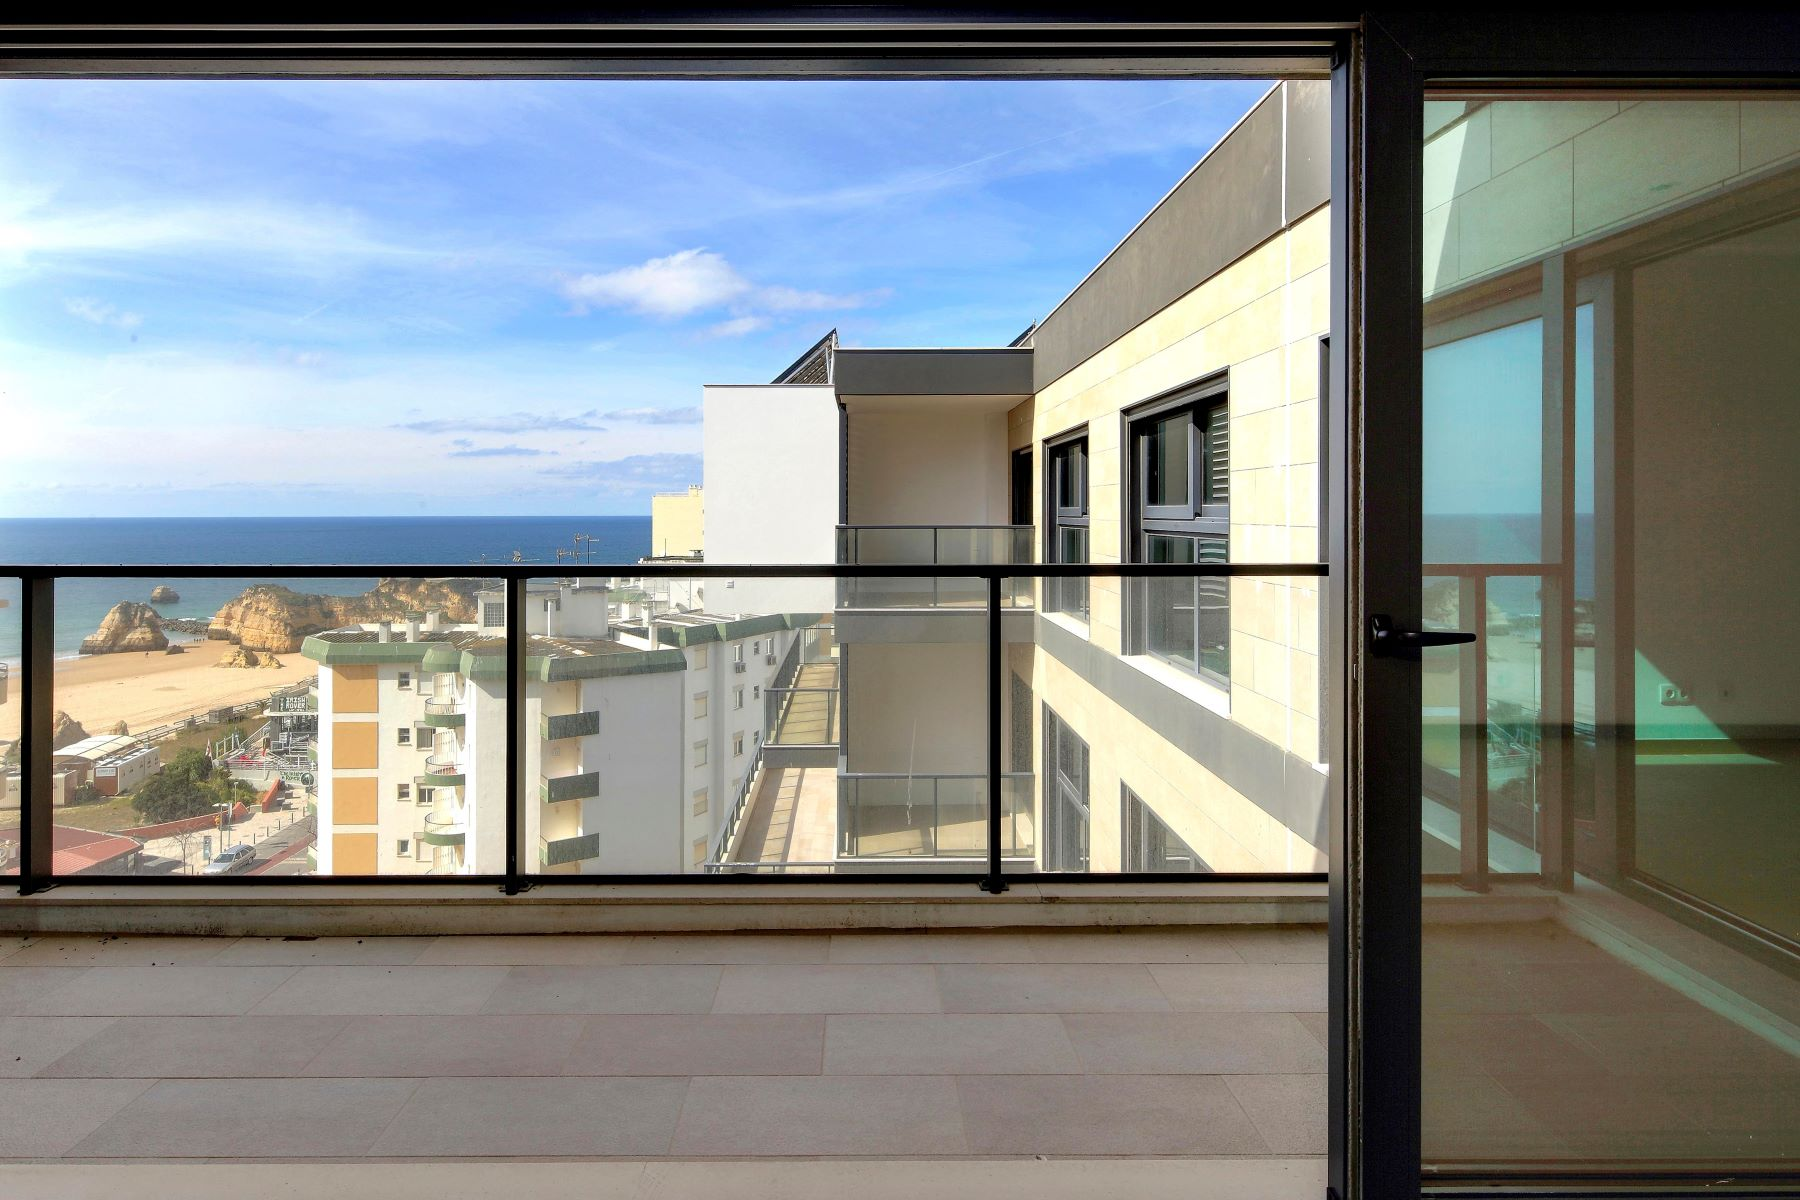 Apartment for Sale at Flat, 3 bedrooms, for Sale Portimao, Algarve Portugal